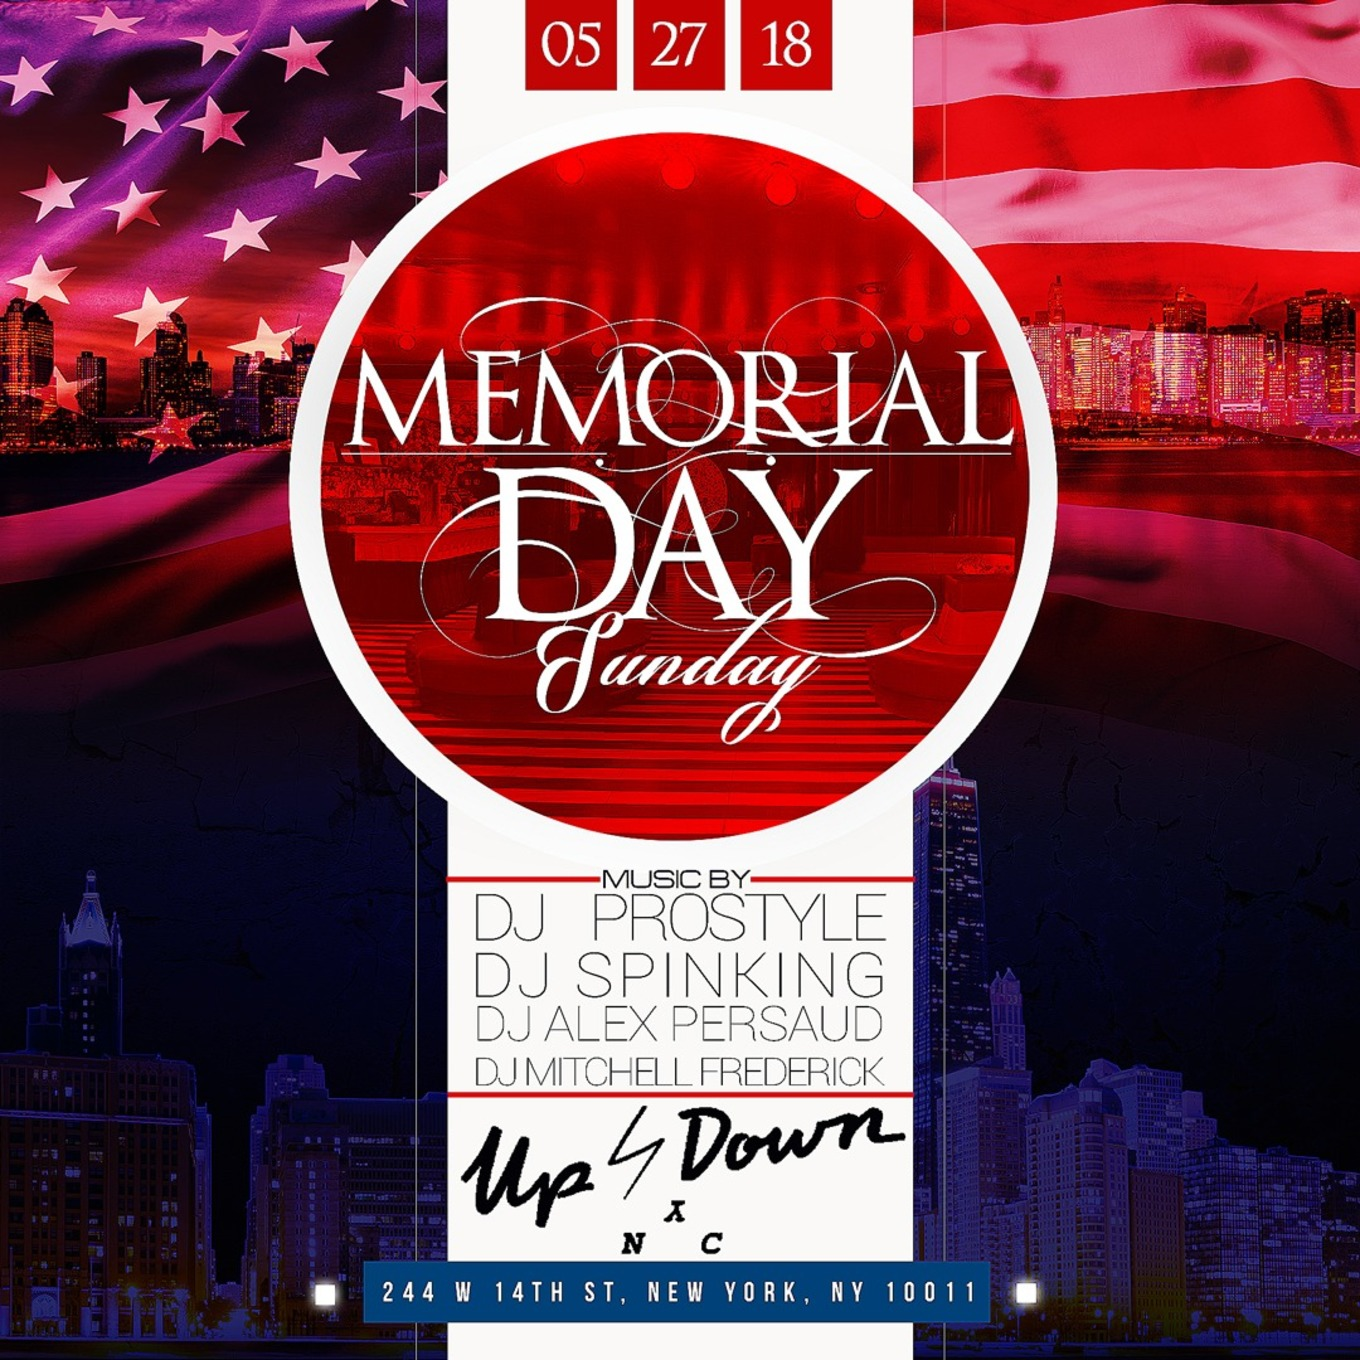 memorial day sunday dj prostyle live at up down tickets rh nightout com